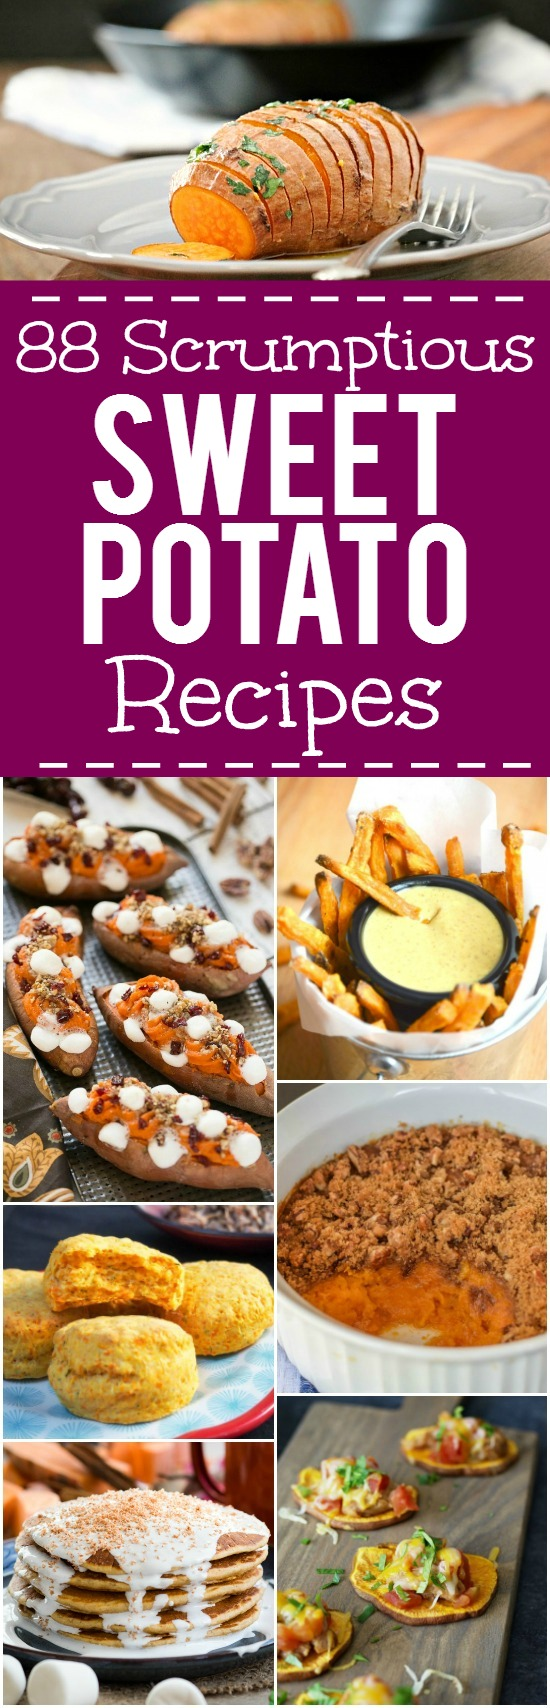 Sweet Potato Recipes - Side Dishes, dinners, breakfast, and dessert. 88 of the BEST Sweet Potato Recipes for warm, cozy dinners, unique breakfasts and desserts, and delicious and festive Thanksgiving side dishes.